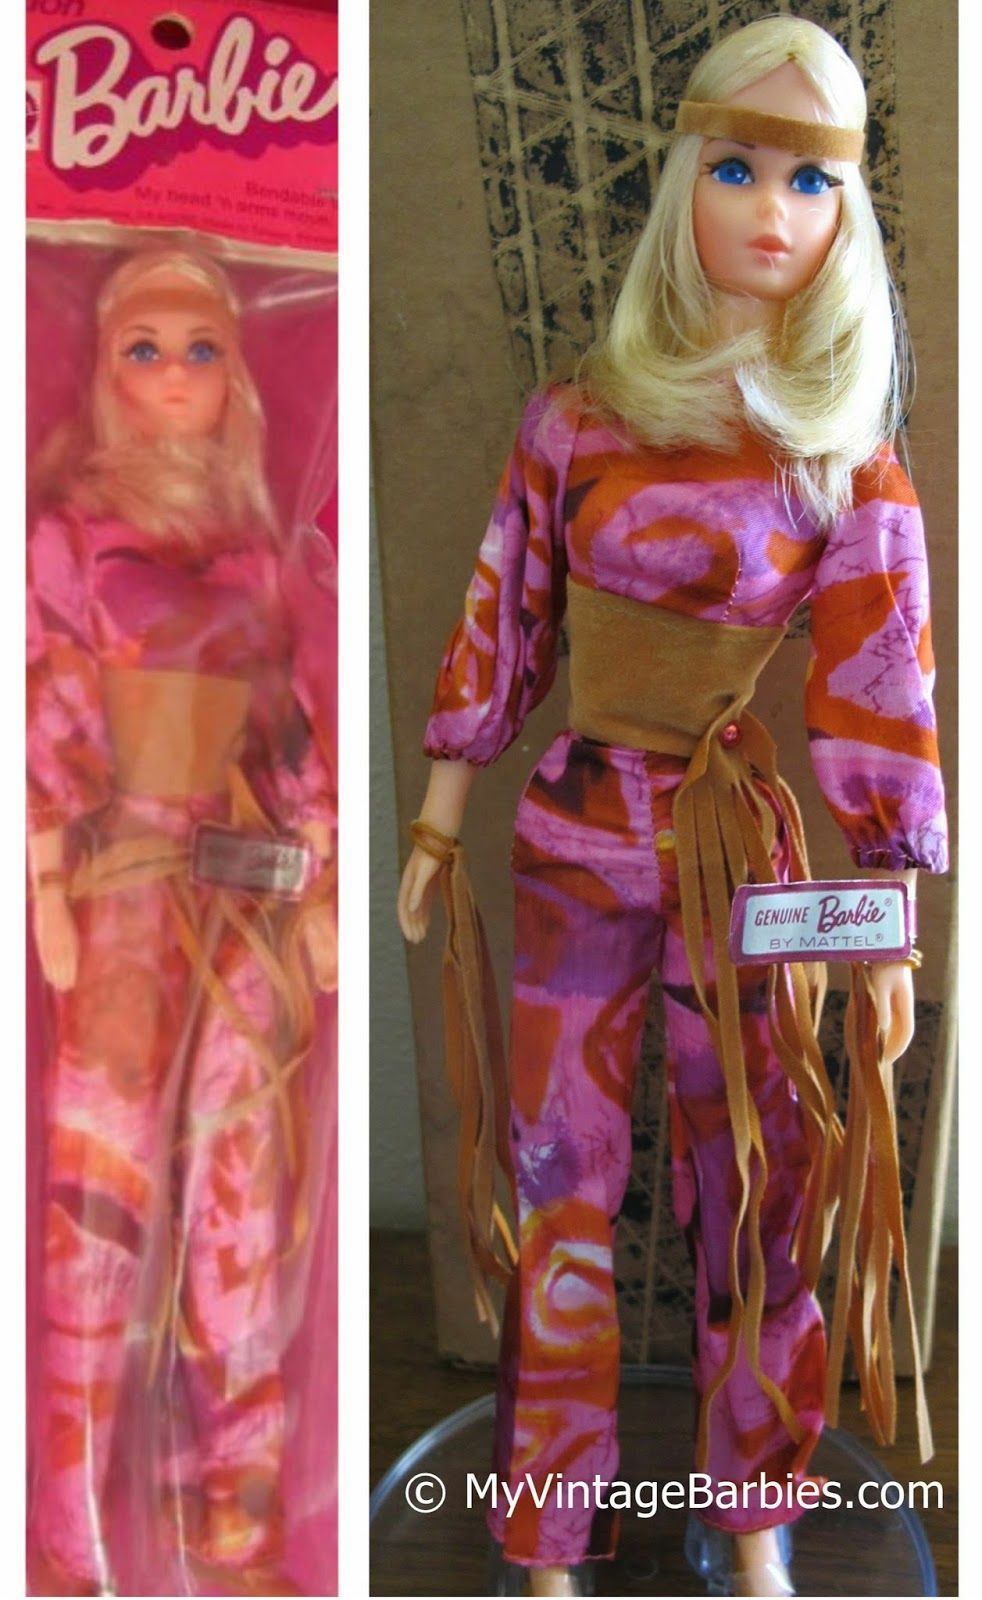 In 1973-1974 Mattel released a Live Action Baggie Version (#8588).  The company most likely had an excess of these dolls, so they sold them at a reduced rate in a baggie rather than a box.  The Baggie version did not include the stand.  There was a mail order version too, which did include the Touch and Go stand.